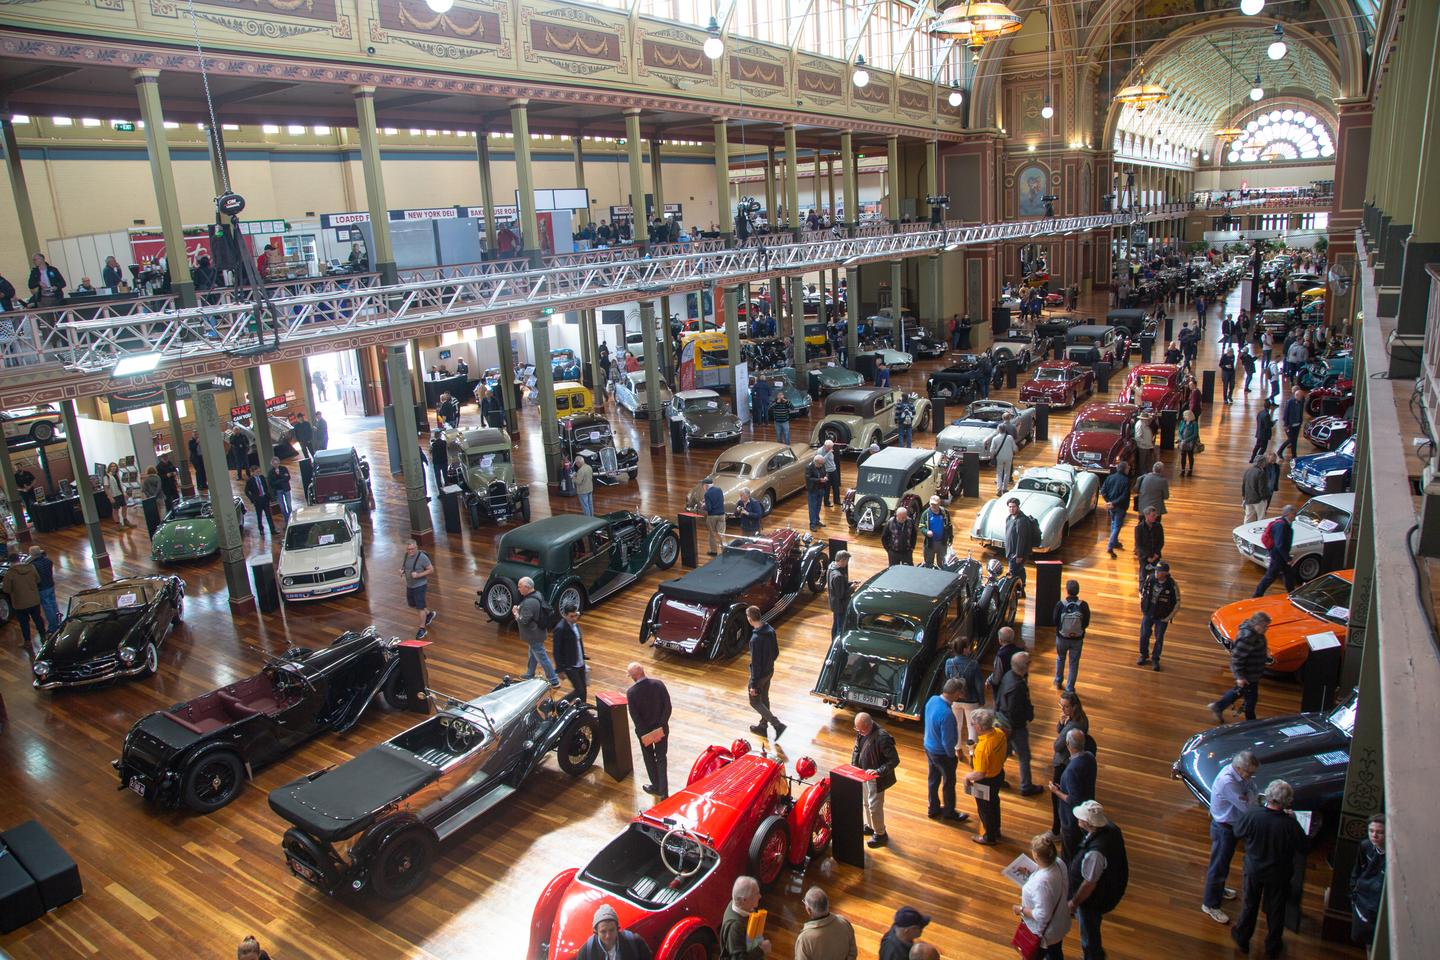 Held at the beautiful Royal Exhibition building in Melbourne, Australia, Motorclassica once again provided an unparalleled treat for lovers of cars and motorcycles from all eras